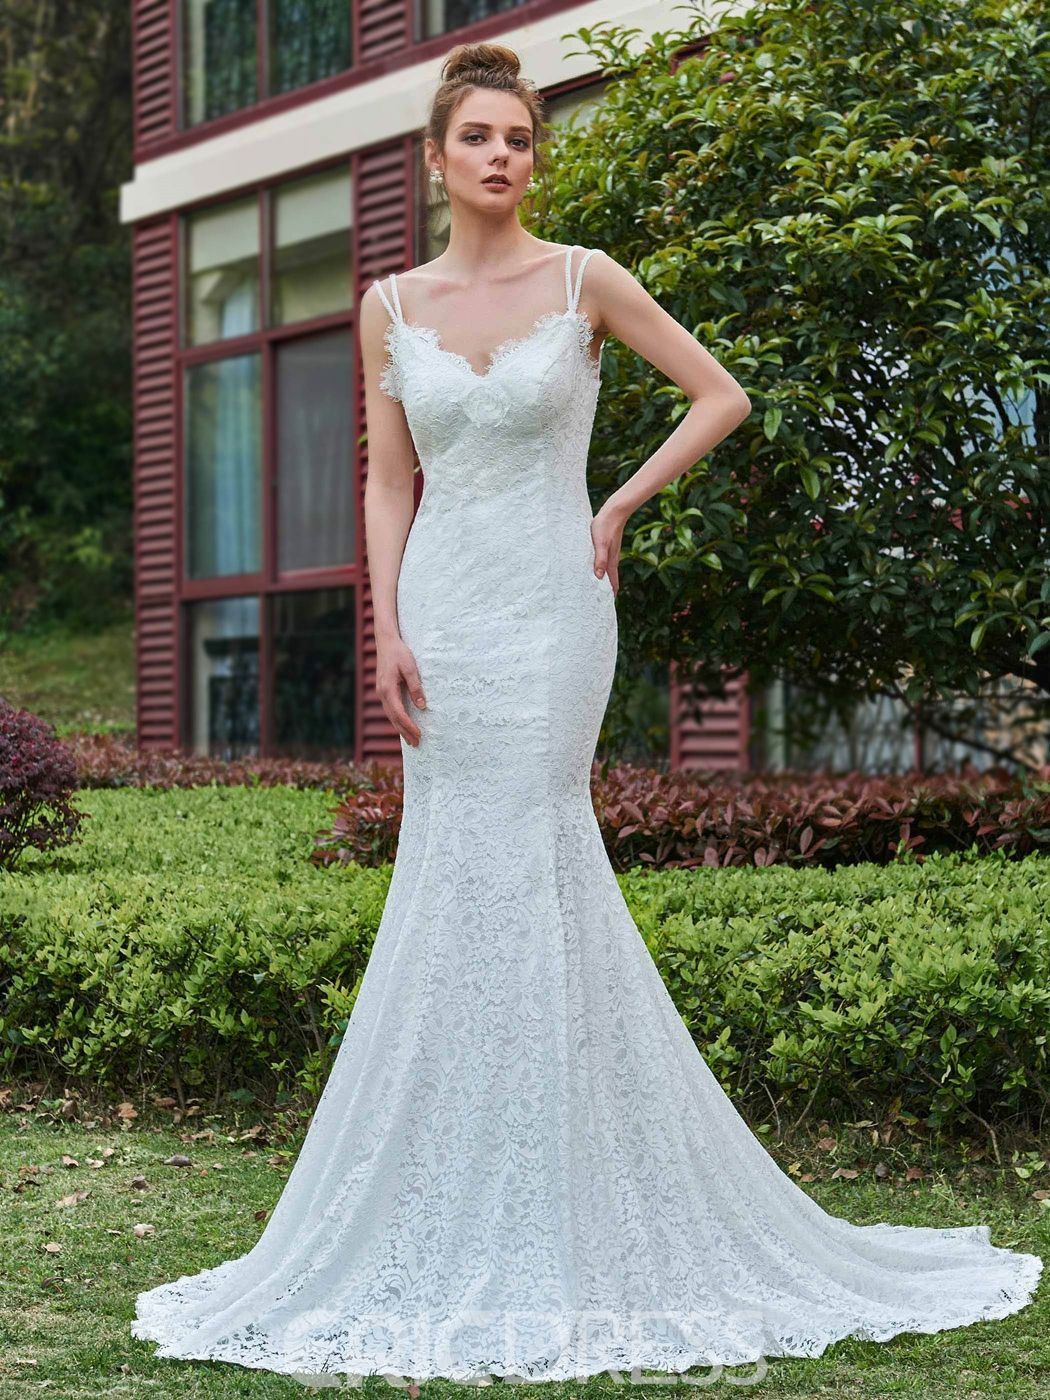 Mermaid Lace Spaghetti Straps Backless Wedding Dress | Backless ...